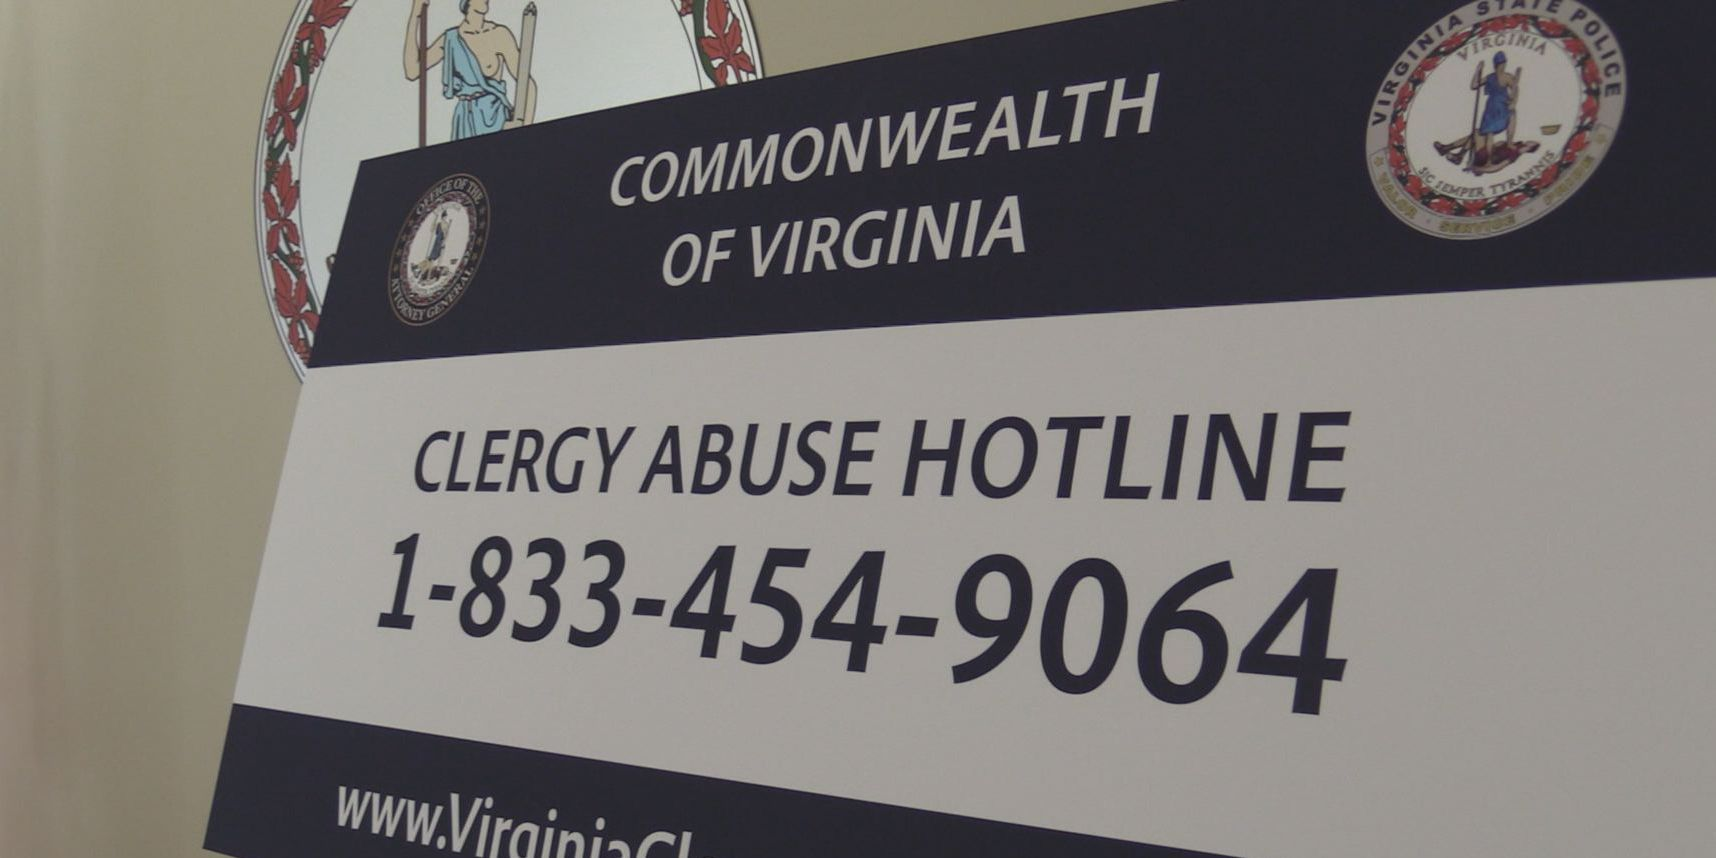 Attorney General creates Virginia Clergy Abuse Hotline